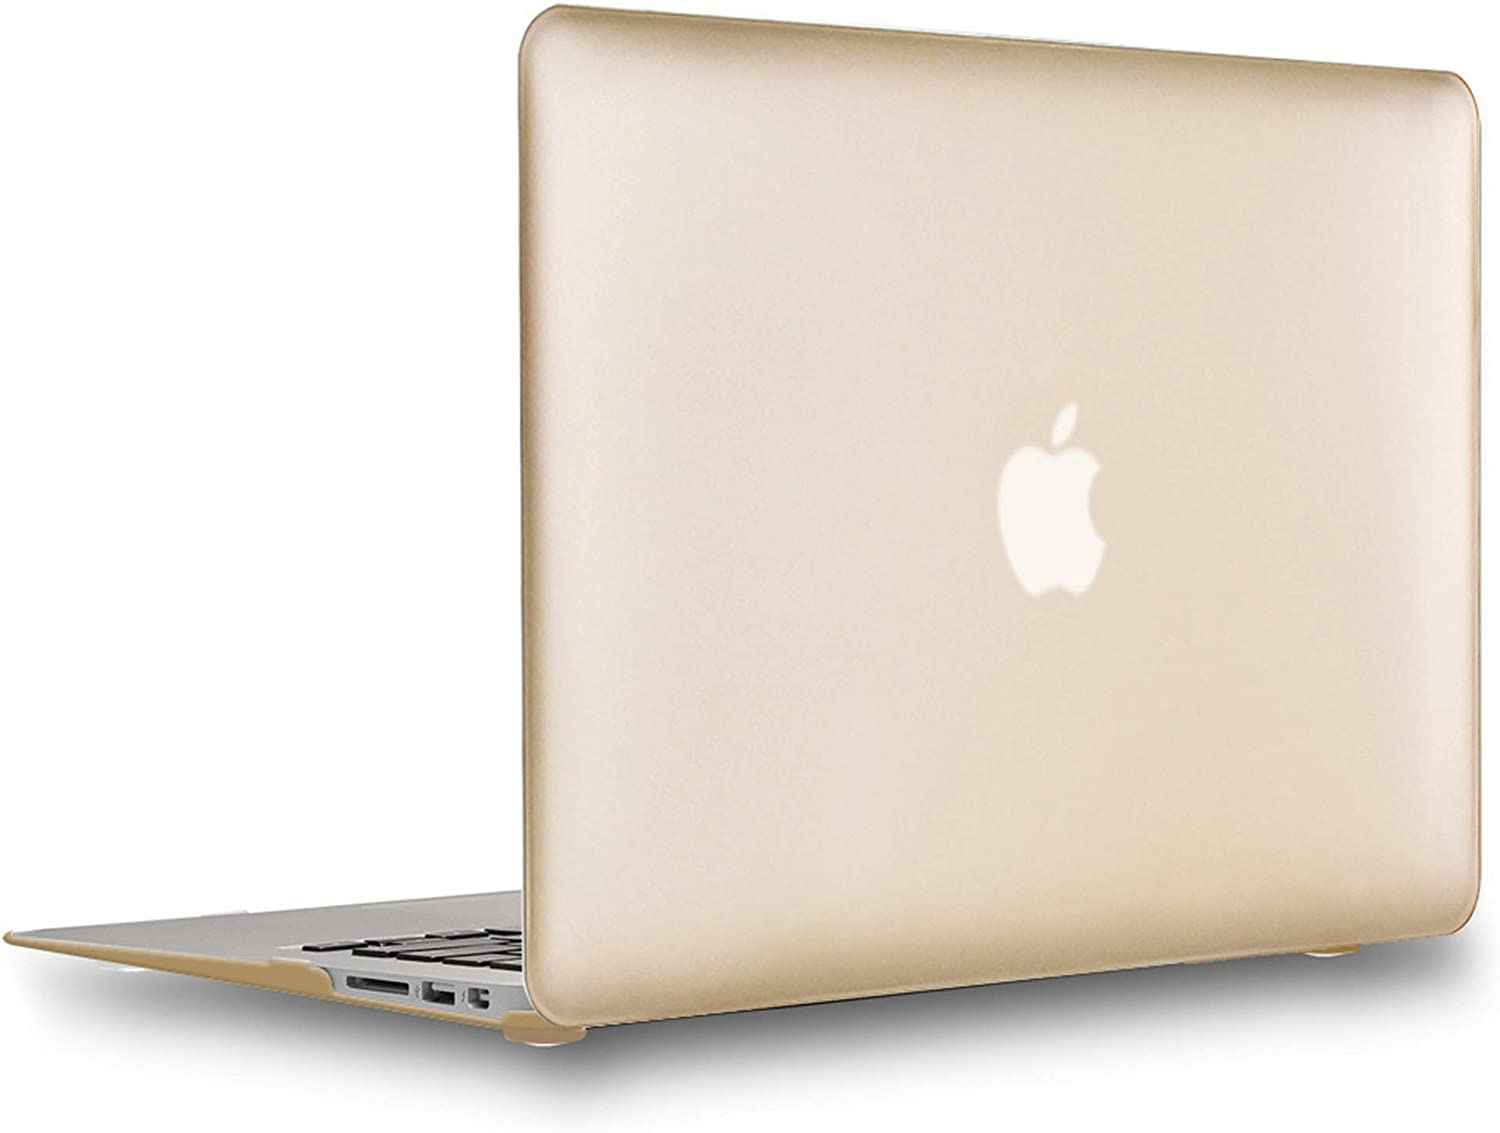 UESWILL Luxury Gold Excellence Matte Hard Cover Purchase with Case Shell Compatible